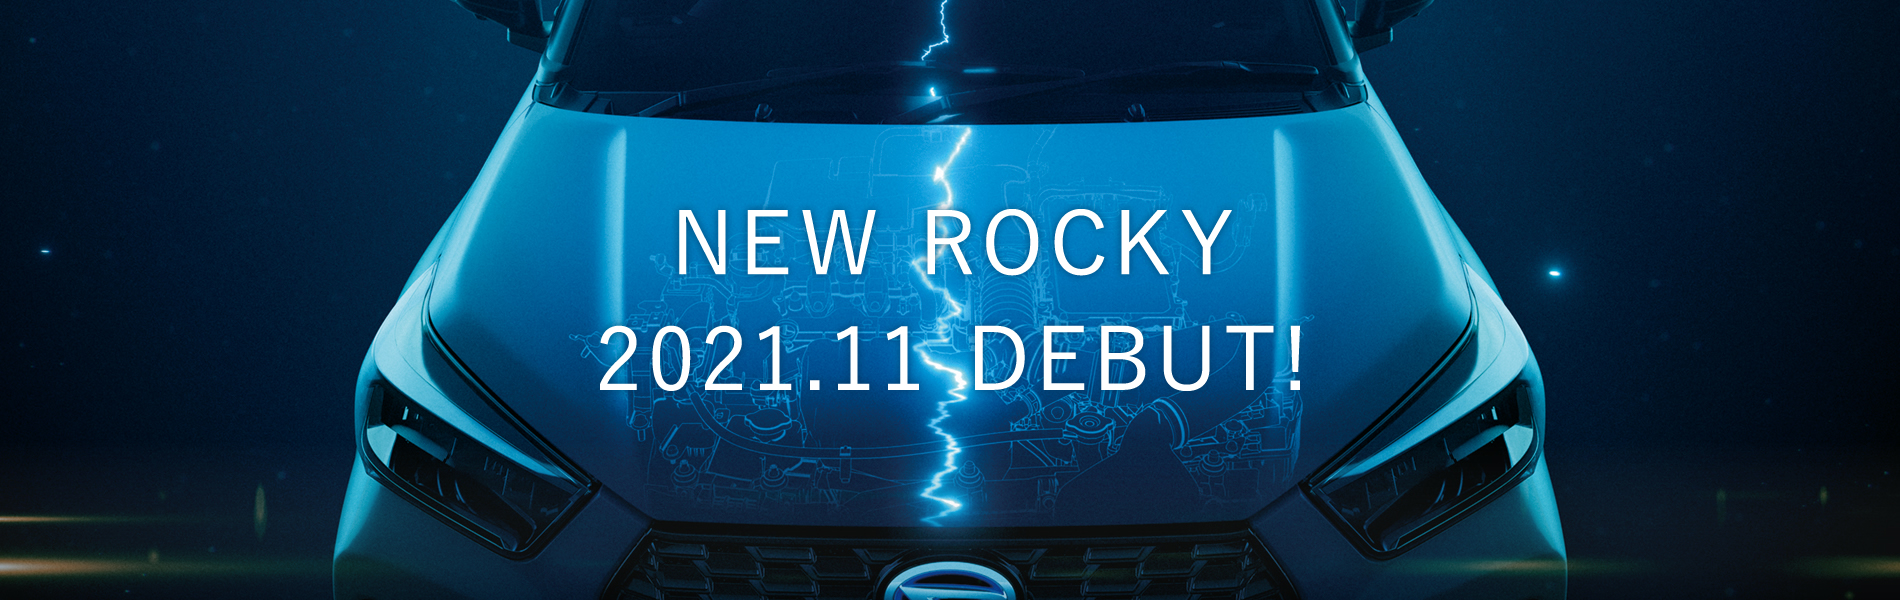 NEW ROCKY 2021.11 DEBUT!